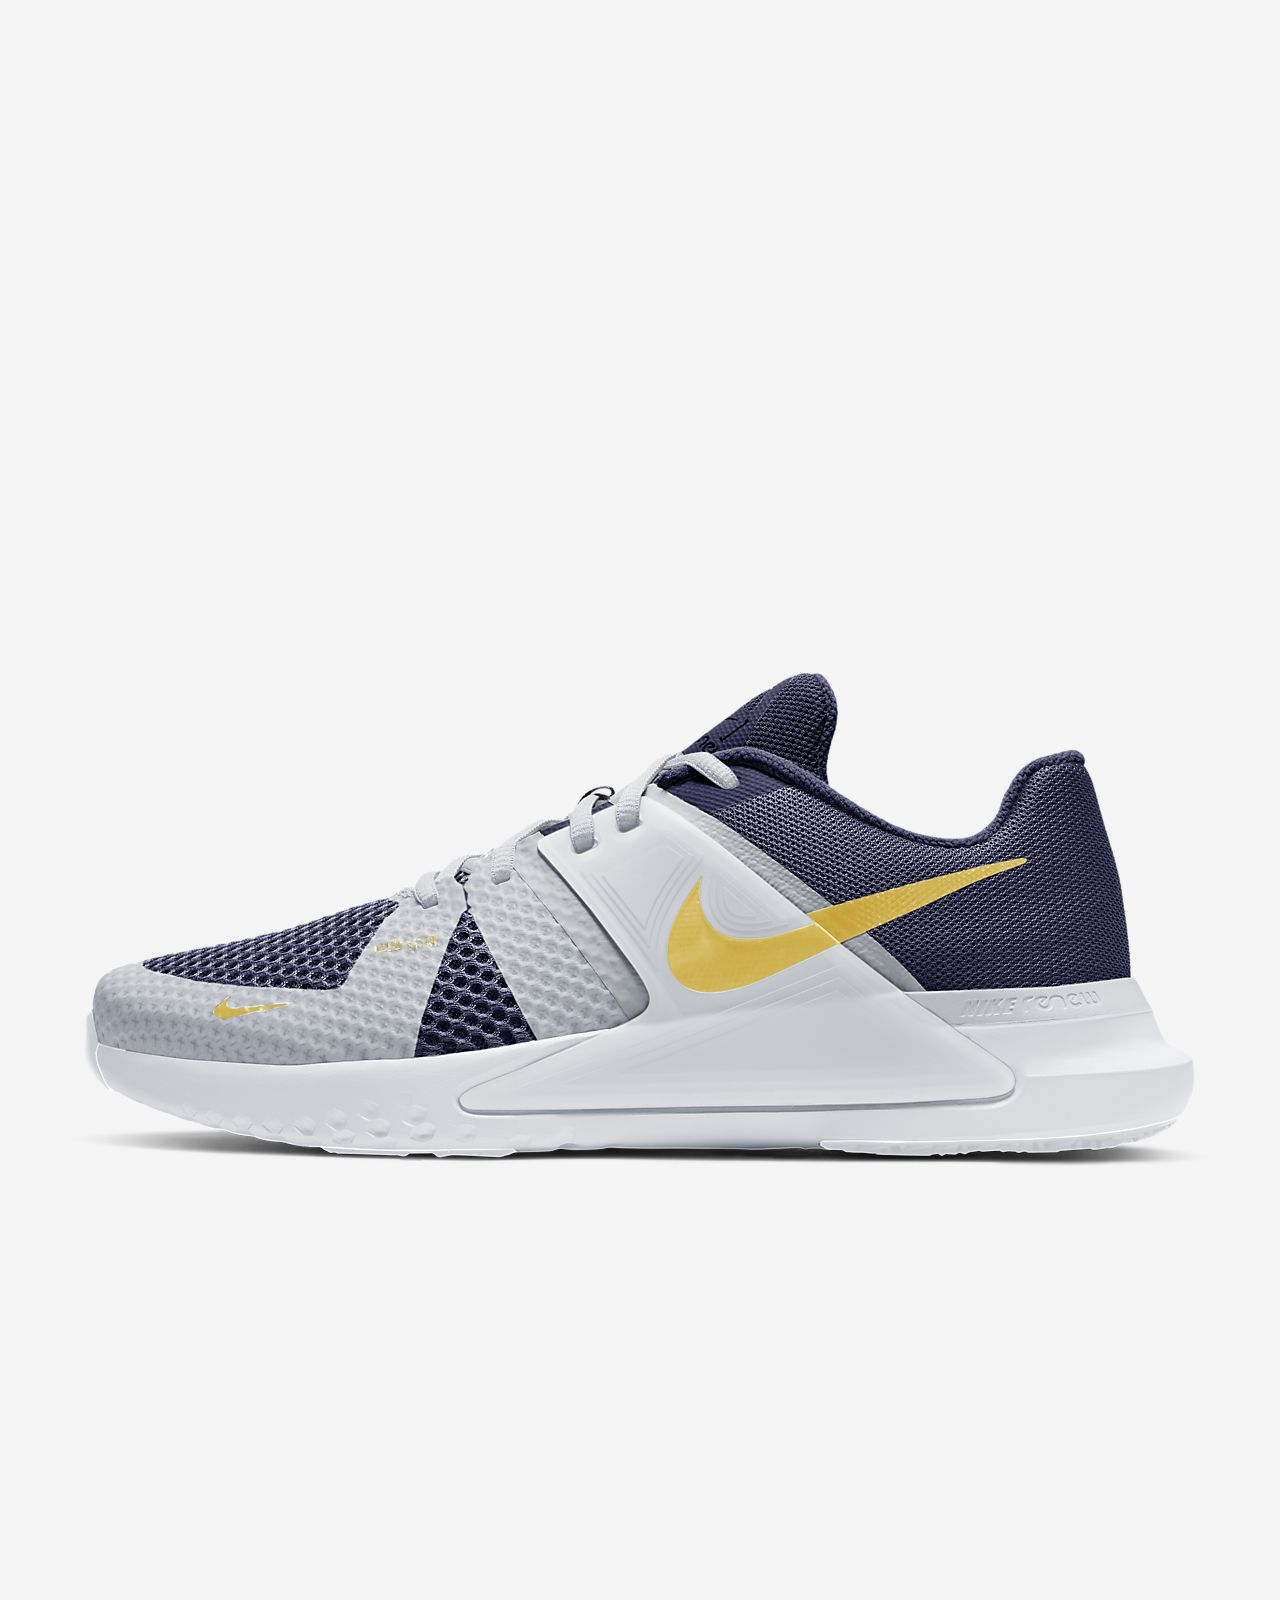 Nike Renew Fusion Men's Training Shoe